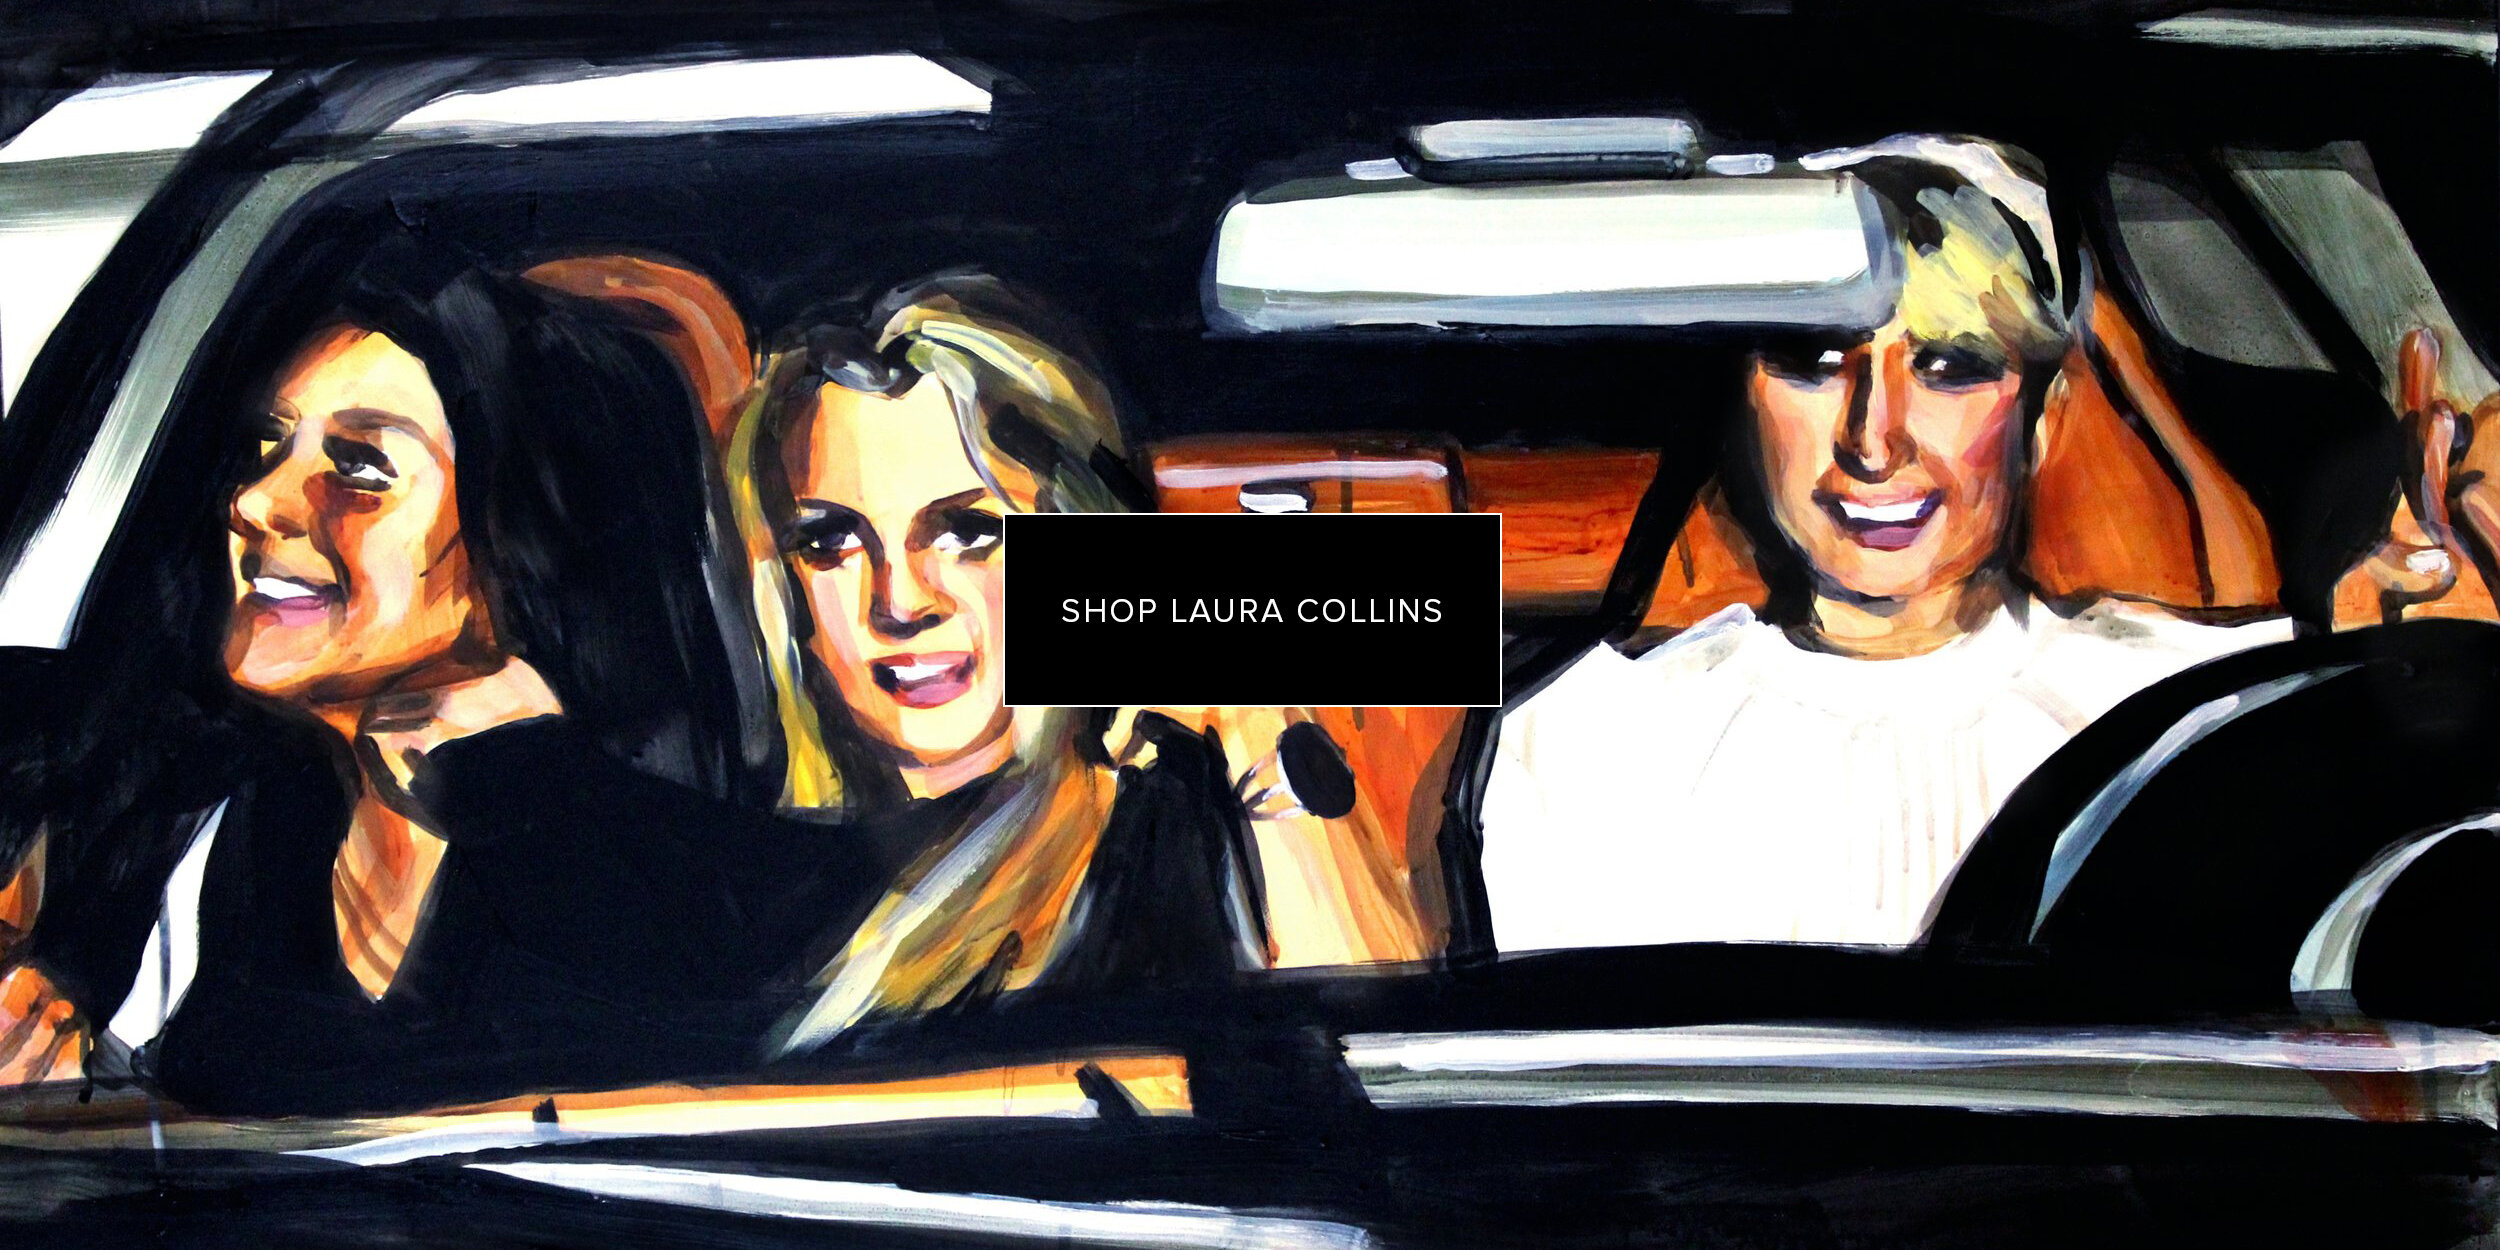 Laura-Collins-Lindsay-Lohan-Britney-Spears-and-Paris-Hilton-in-a-Car-24x36 copy.jpg